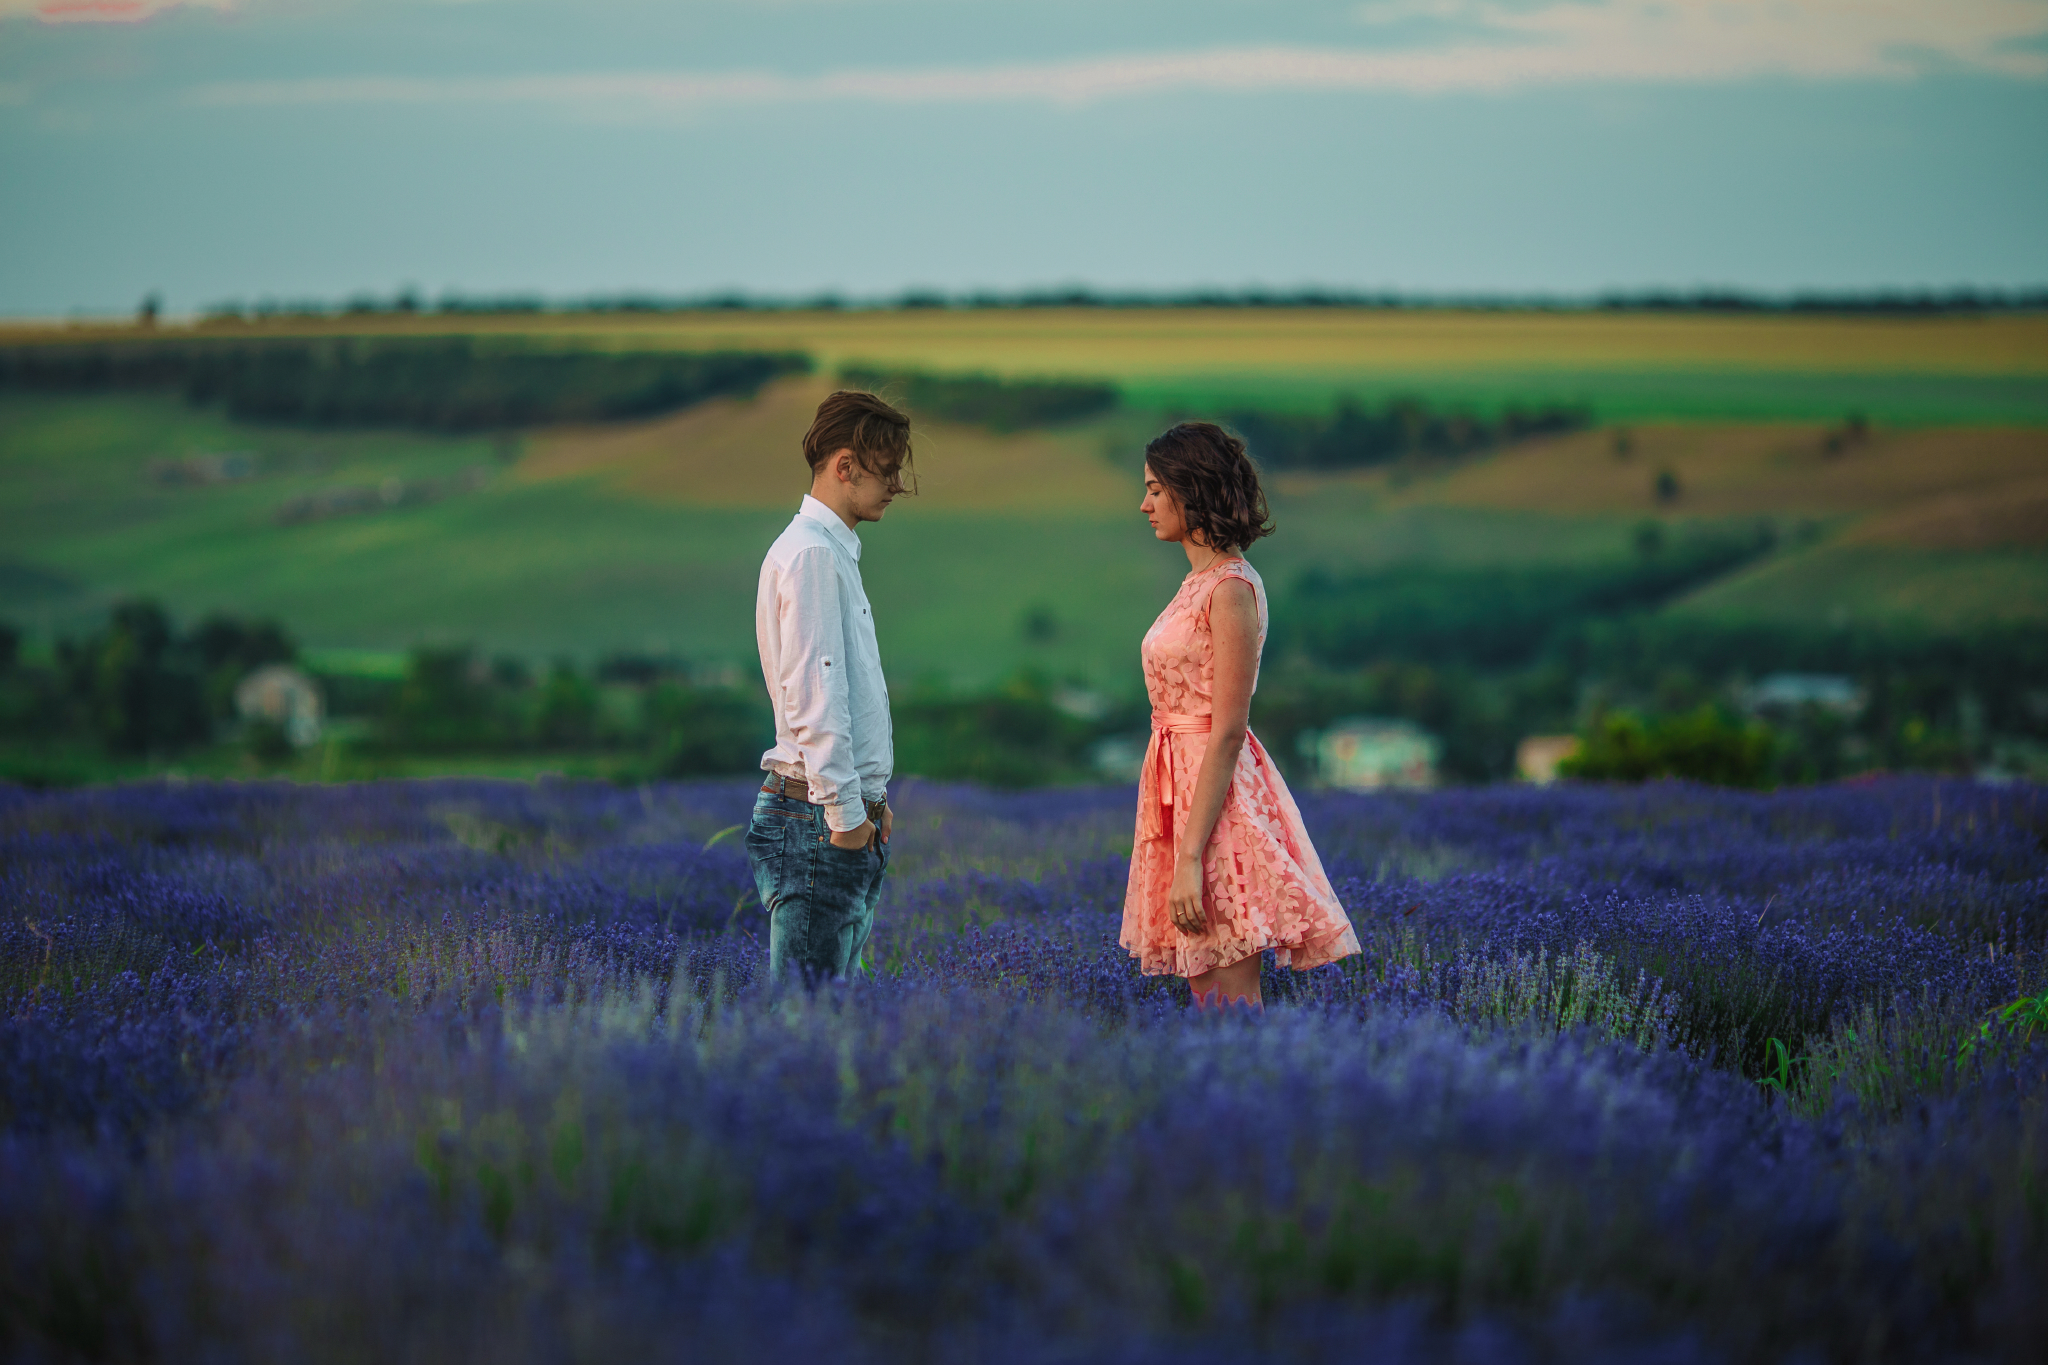 san diego wedding   photographer | woman in pink floral dress and blonde man a few feet apart and   looking down at lavender fields with blue-green filter